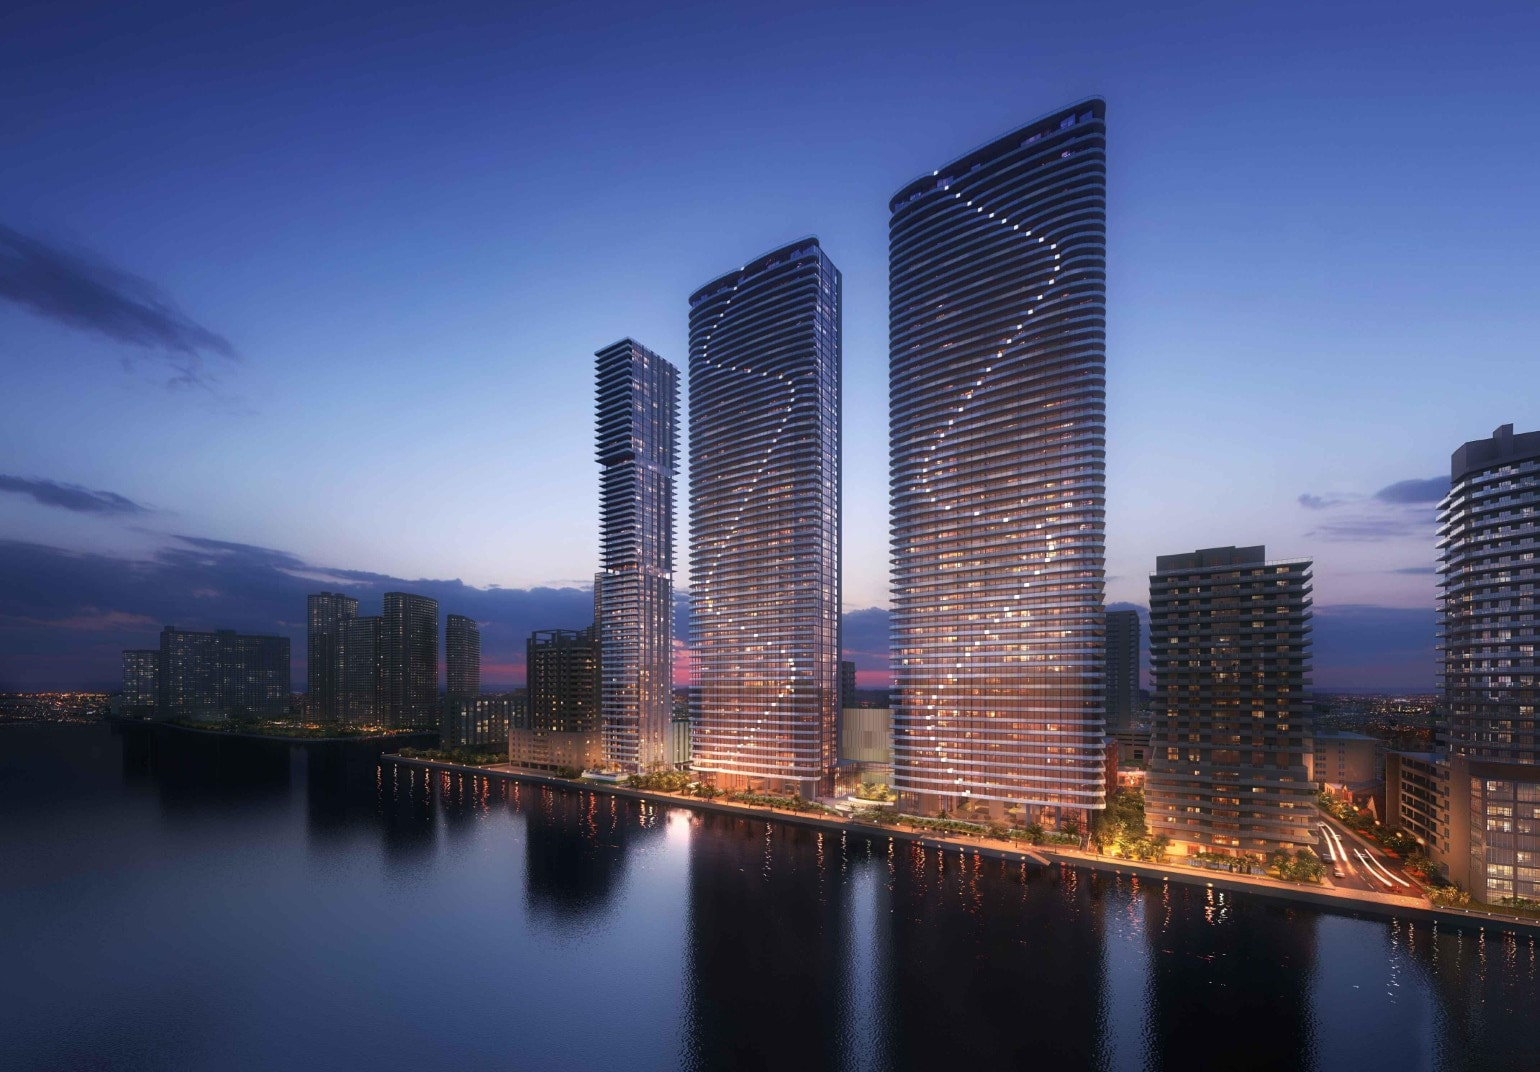 Island Bay Proposed By Melo Group In Edgewater With 782 Units In Twin 60-Story Towers